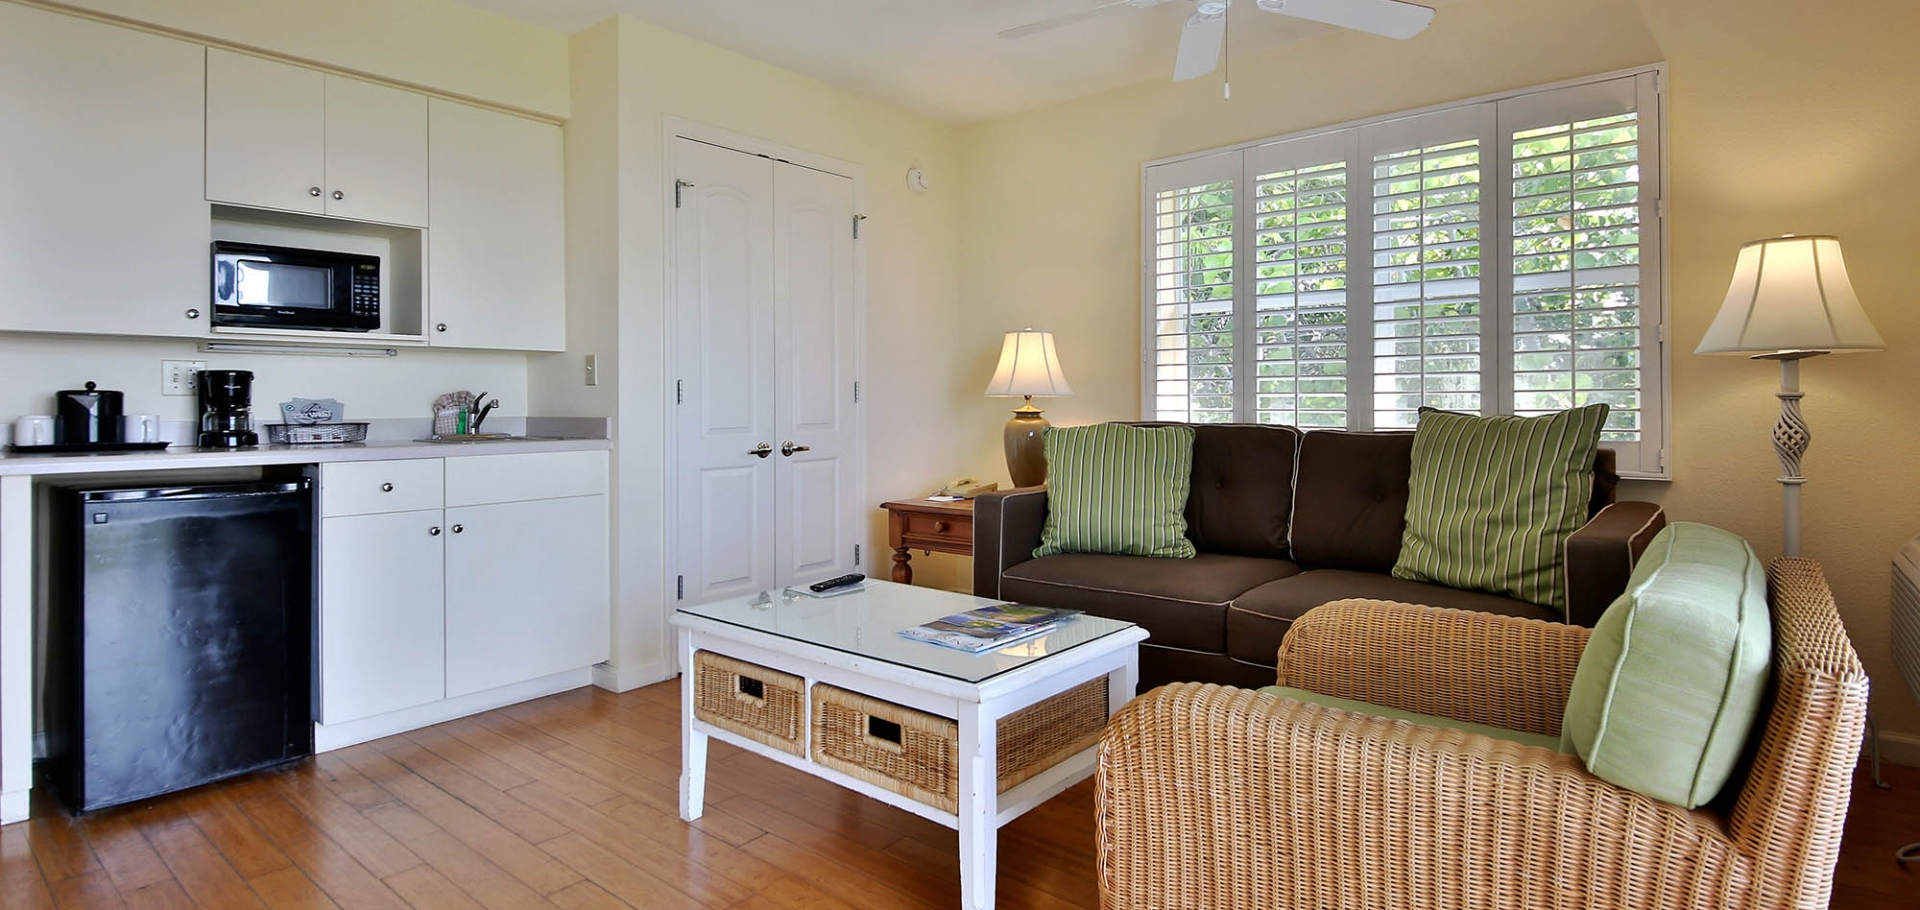 Sanibel Inn guest room seating area and kitchenette